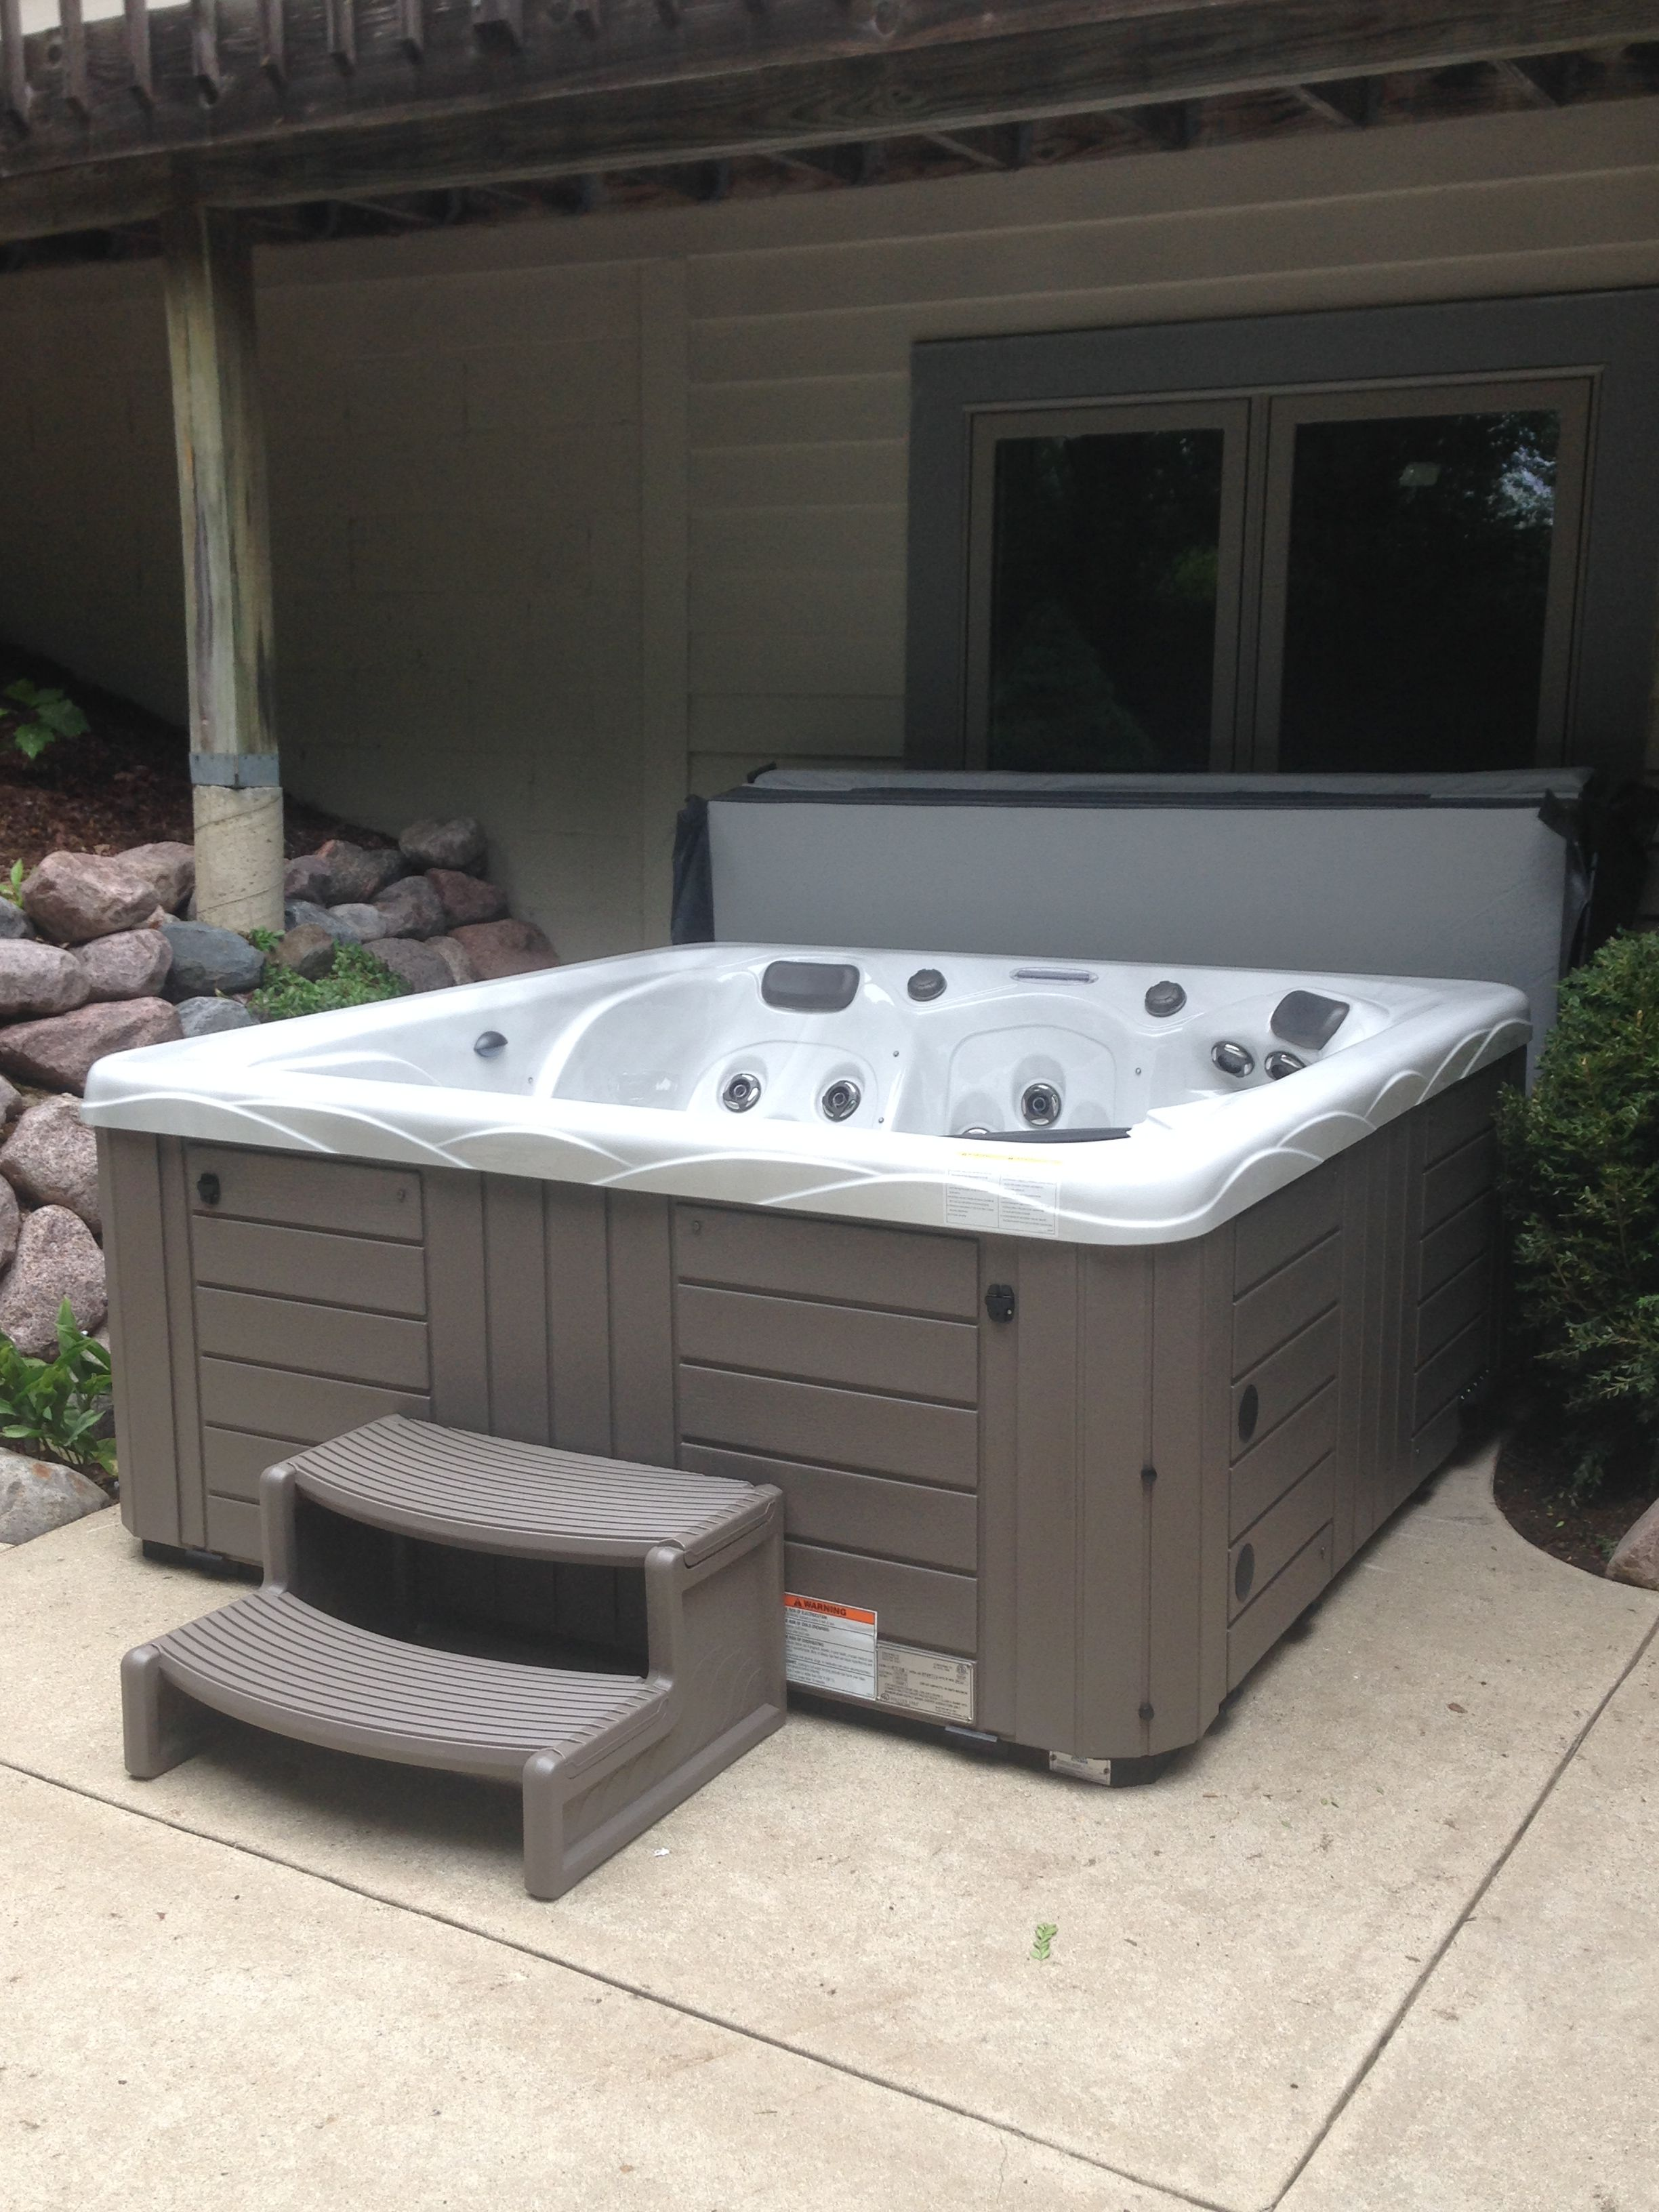 medium resolution of here is a master spas twilight series installed on a concrete slab under the deck